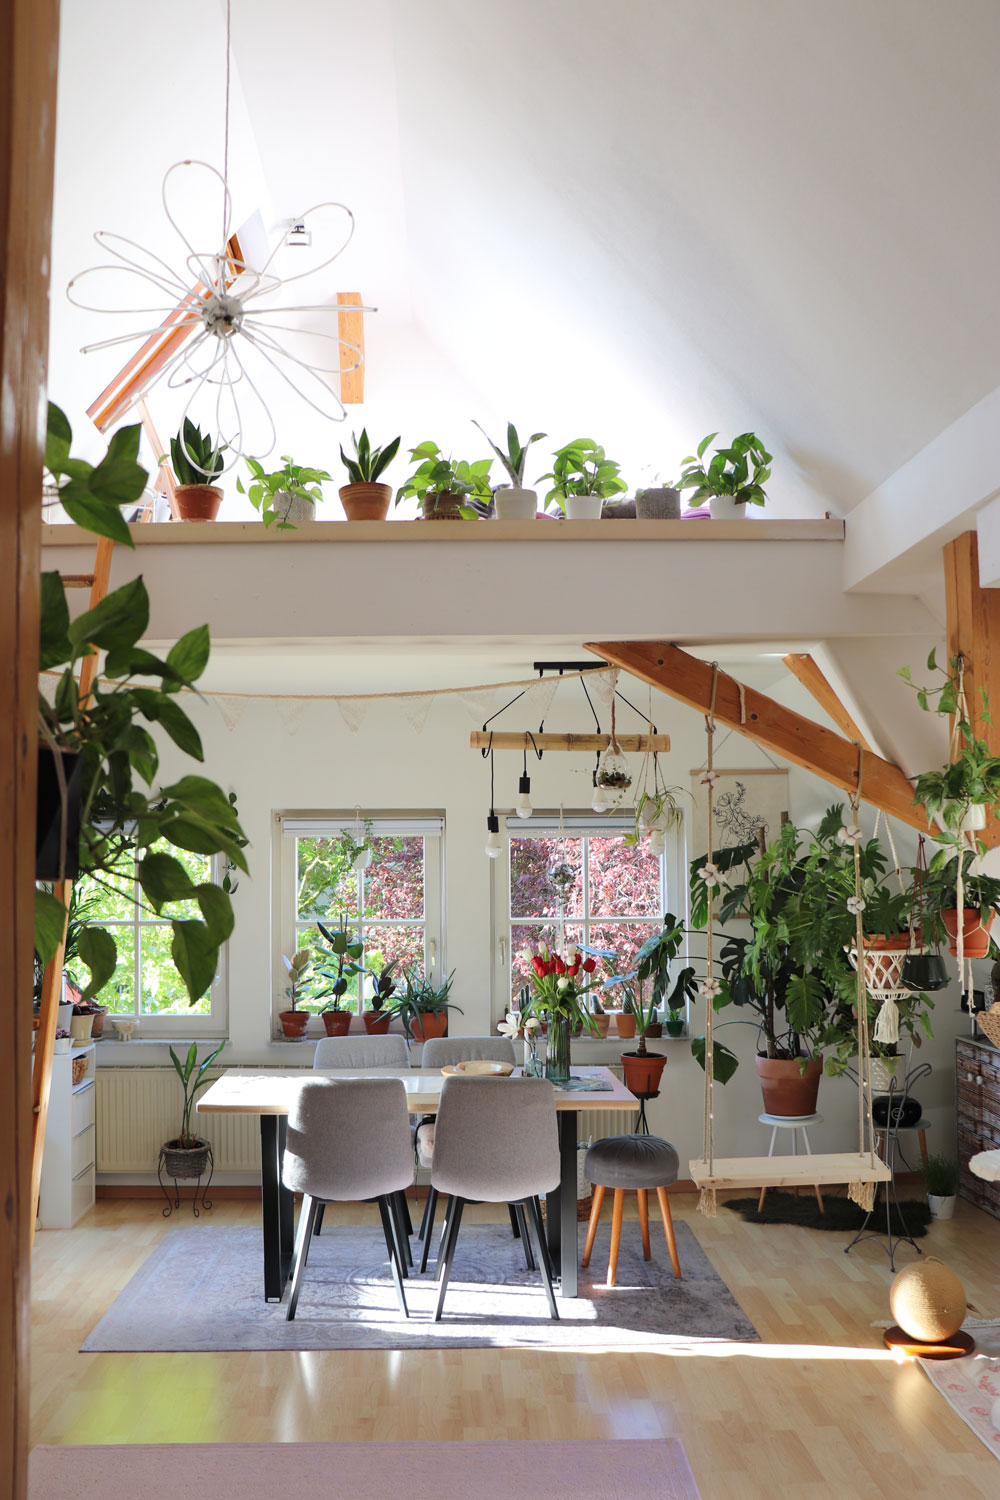 Kristinas-loft-apartment-living-room-with-more-than-130-plants